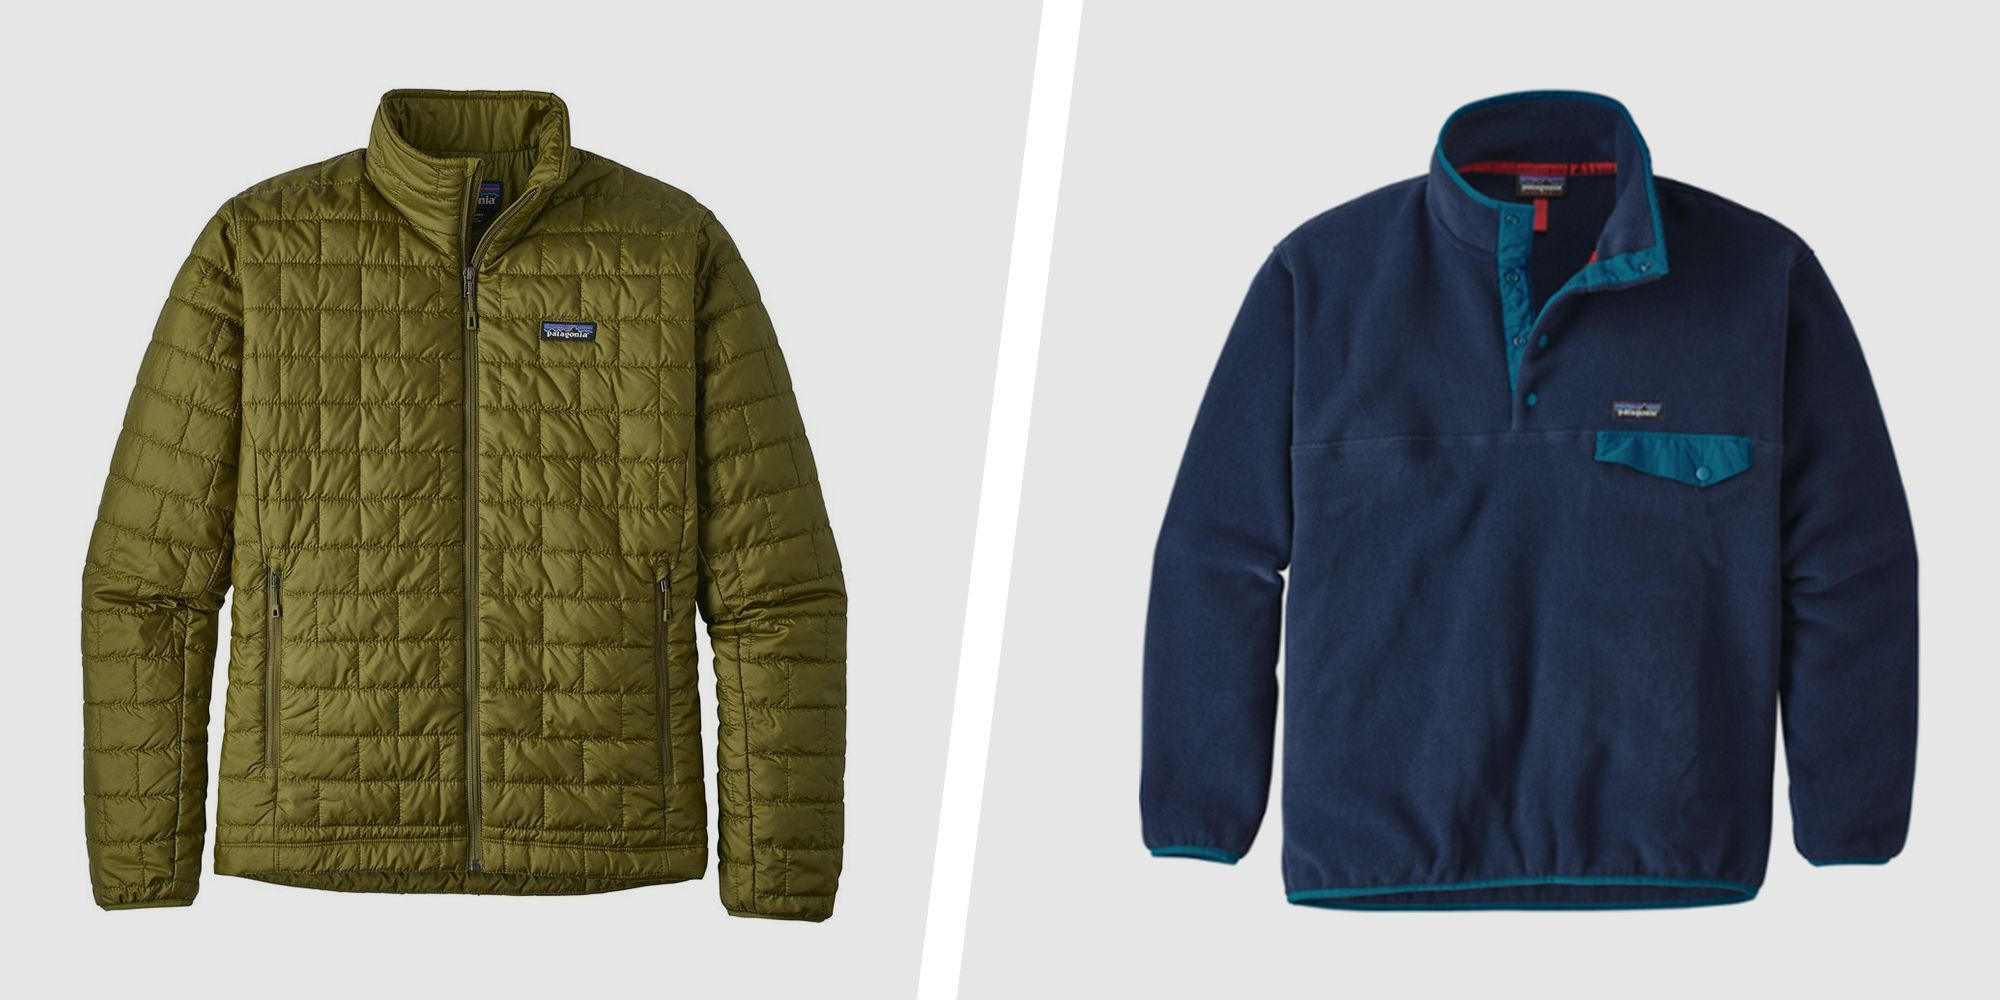 8 Best Patagonia Men's Deals From This REI Outlet Sale Today